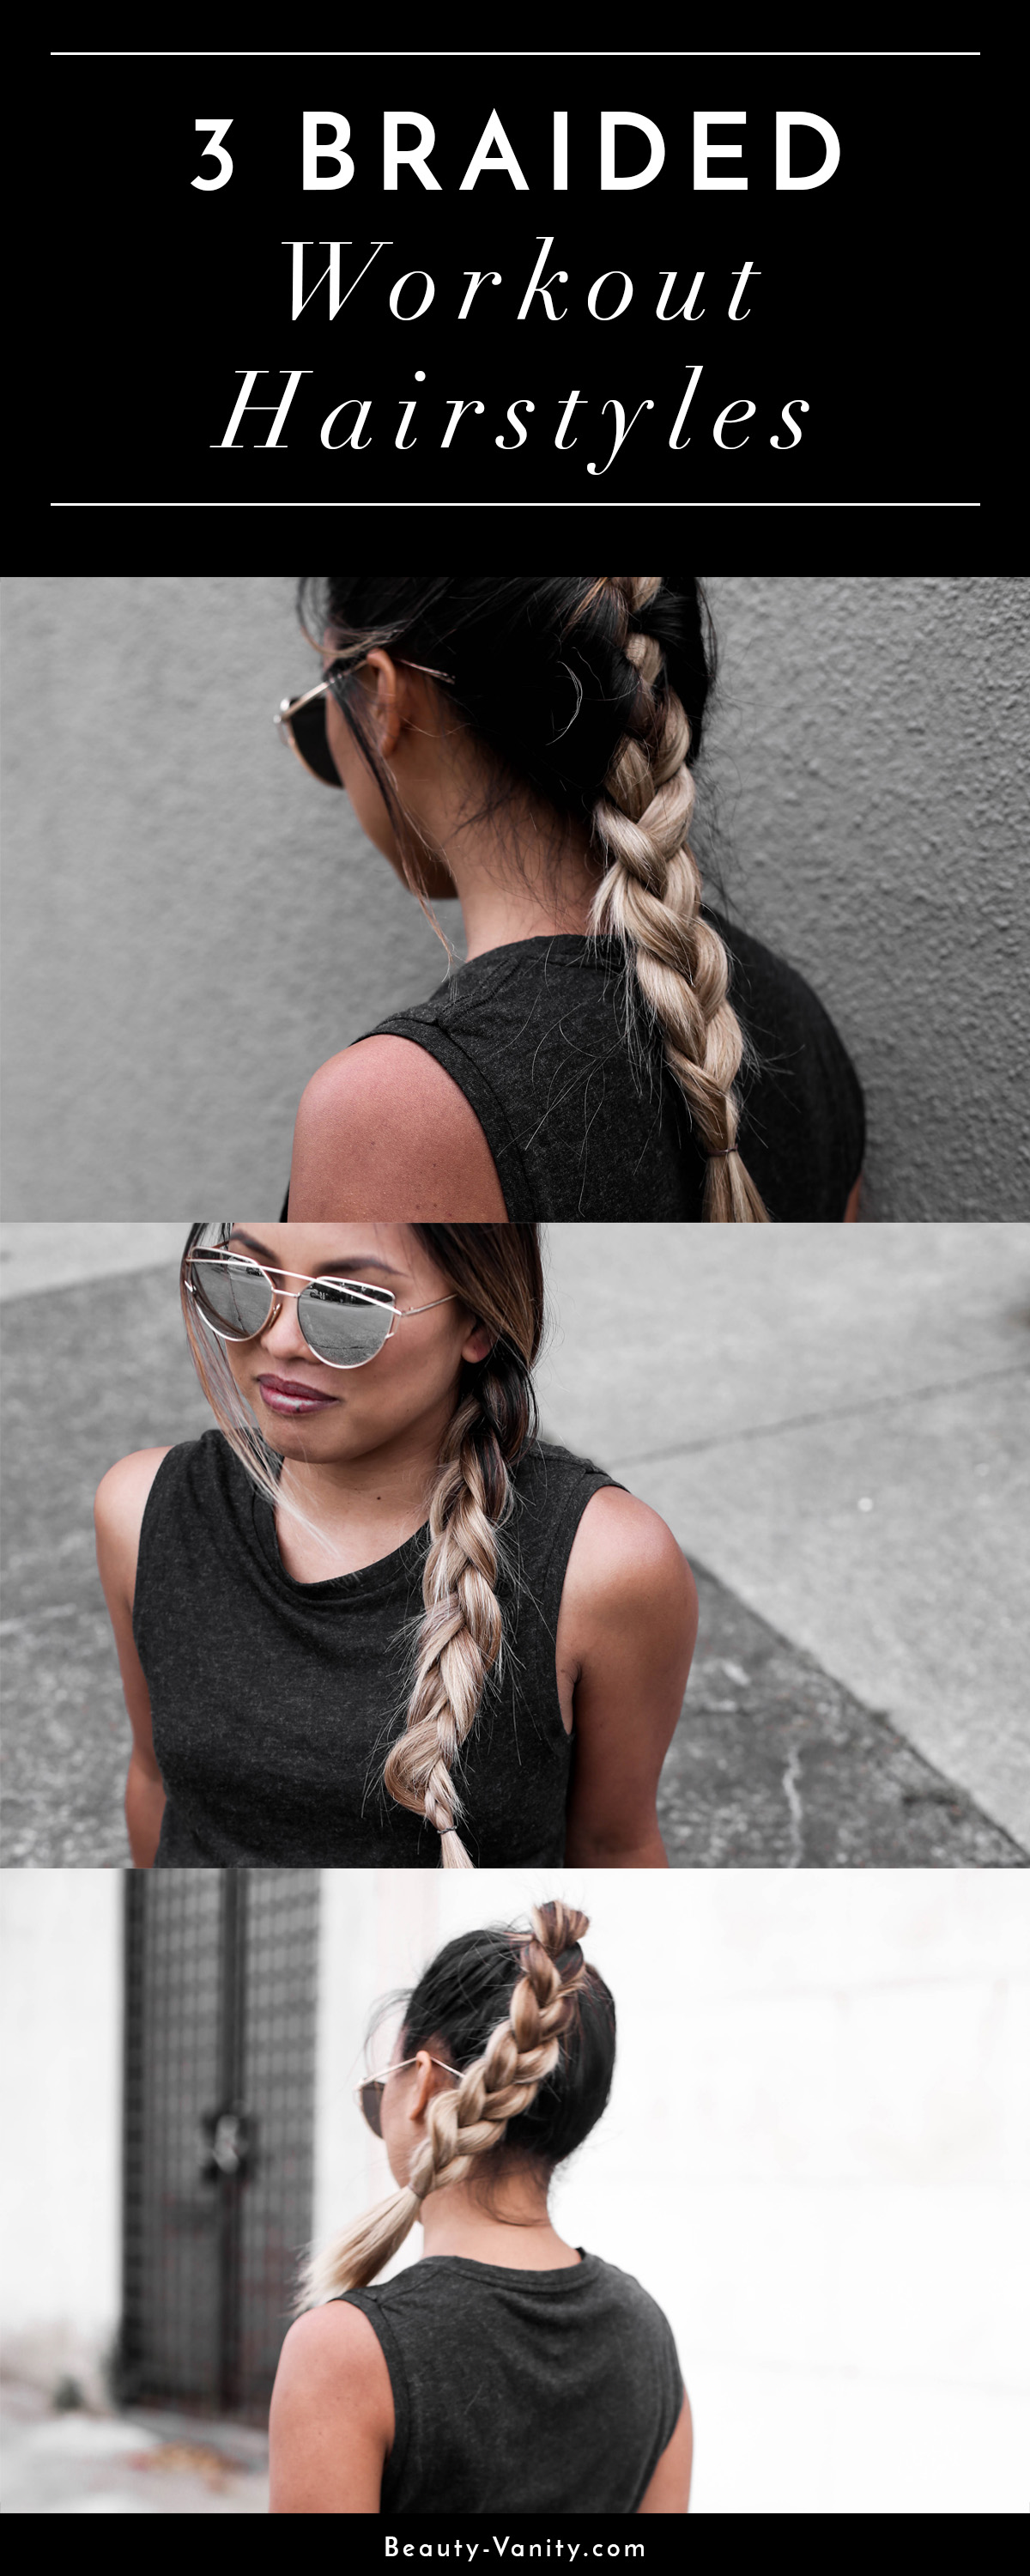 3 Braided Workout Hairstyles | The Beauty Vanity